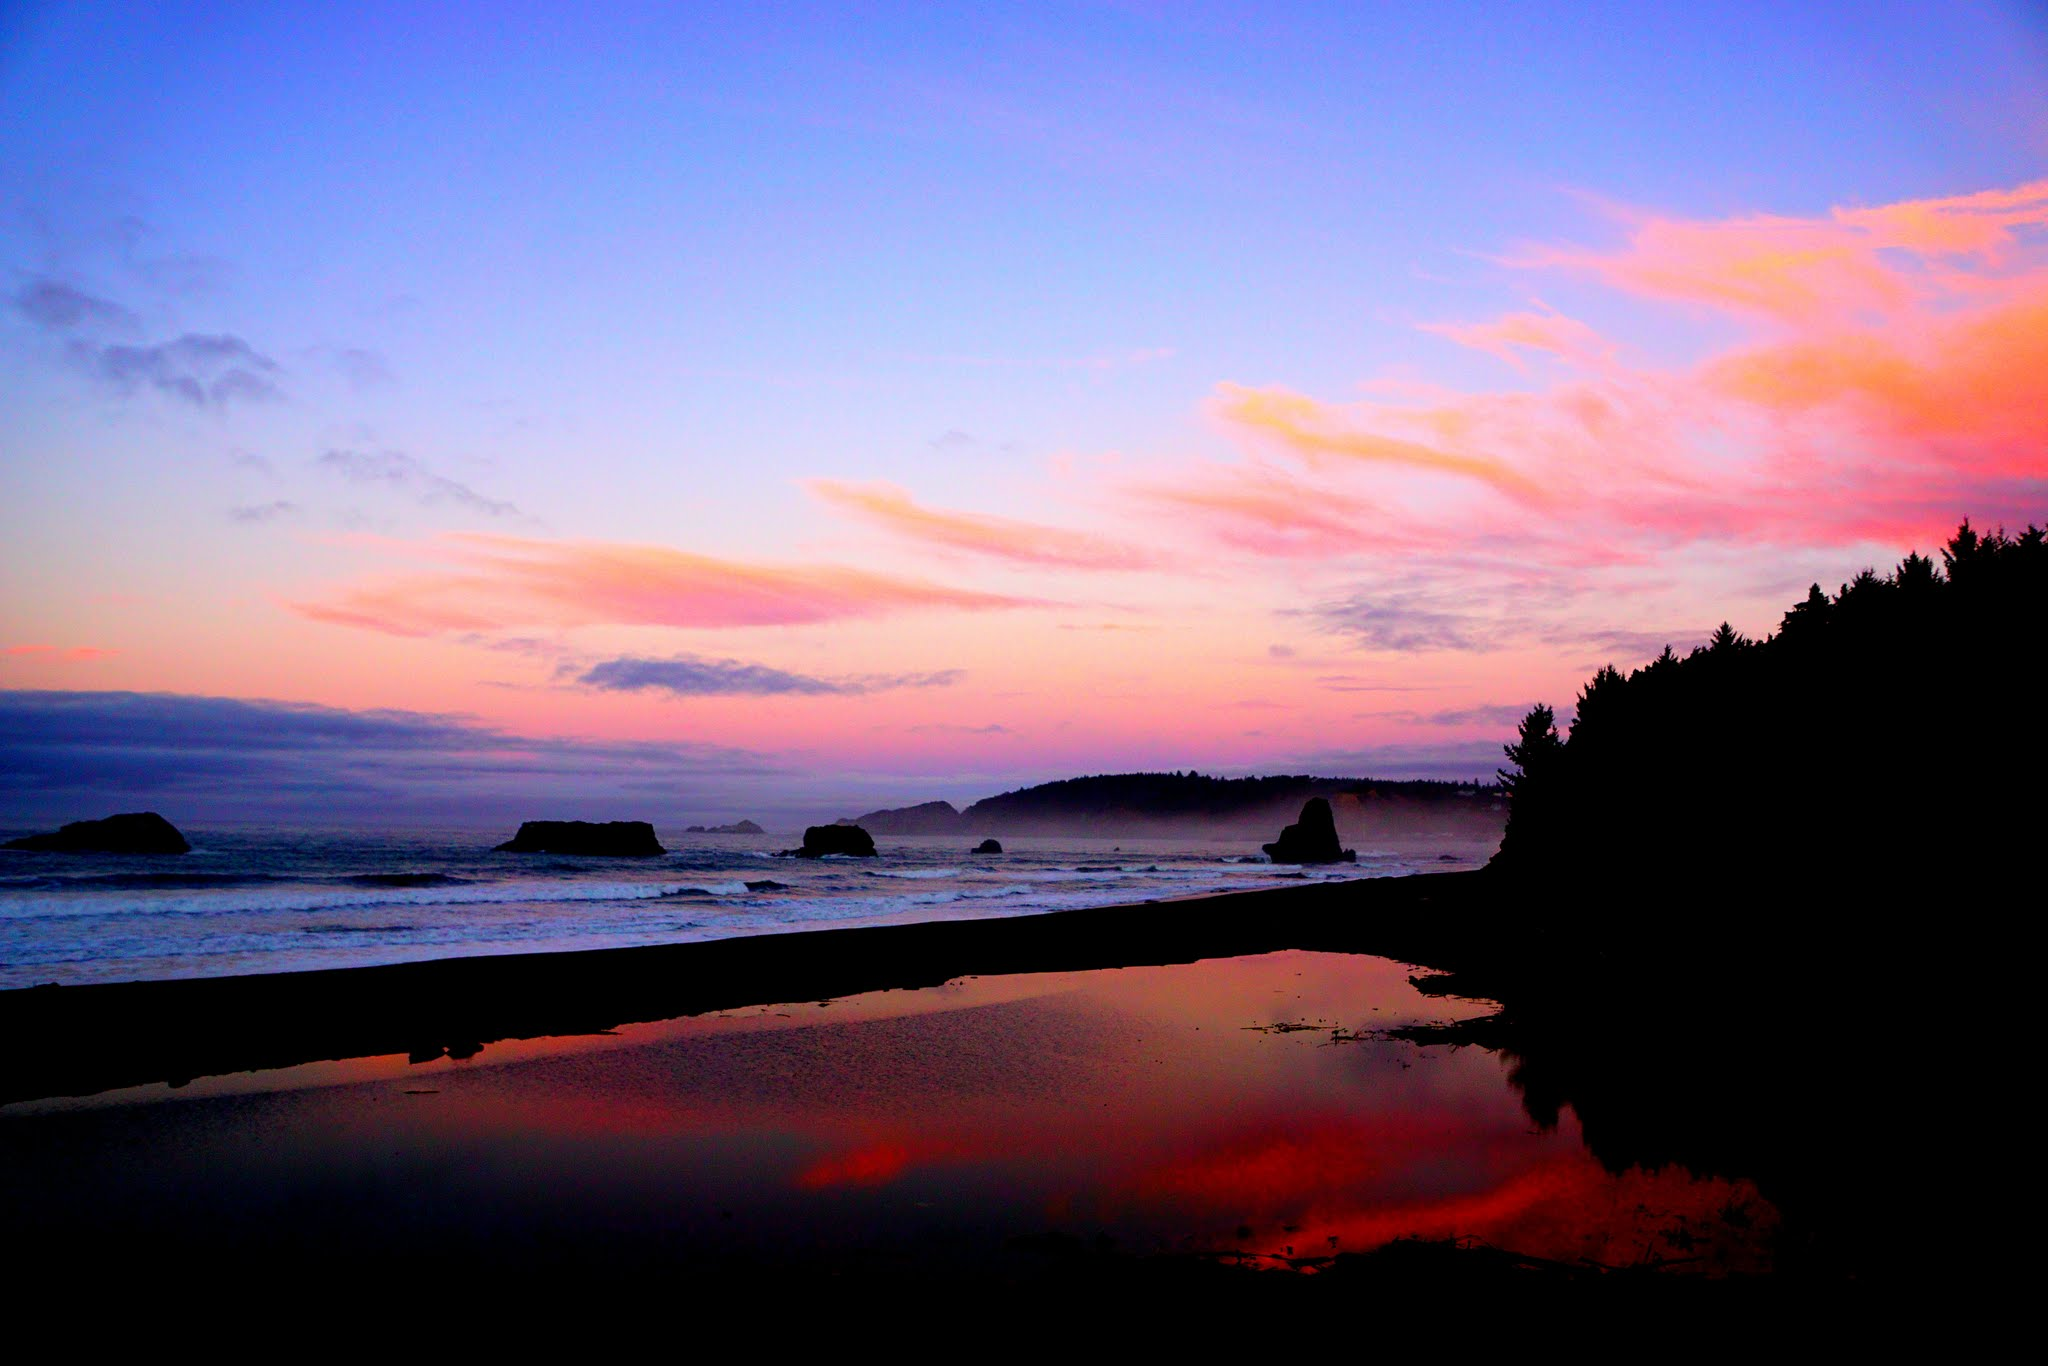 We are just four hours from the coast cities of Florence, Bandon, and Crescent City. The above picture was taken on a weekend trip to Port Orford, where residents camped on the beach. The Oregon Coast's Highway 101 is famous for its winding, verdant scenery and is dotted with towns both quaint and eclectic. Travel far enough north and you can visit the Tillamook Creamery and come home rich in cheese beyond your wildest dreams, travel south to find yourself among the Redwoods of northern California.